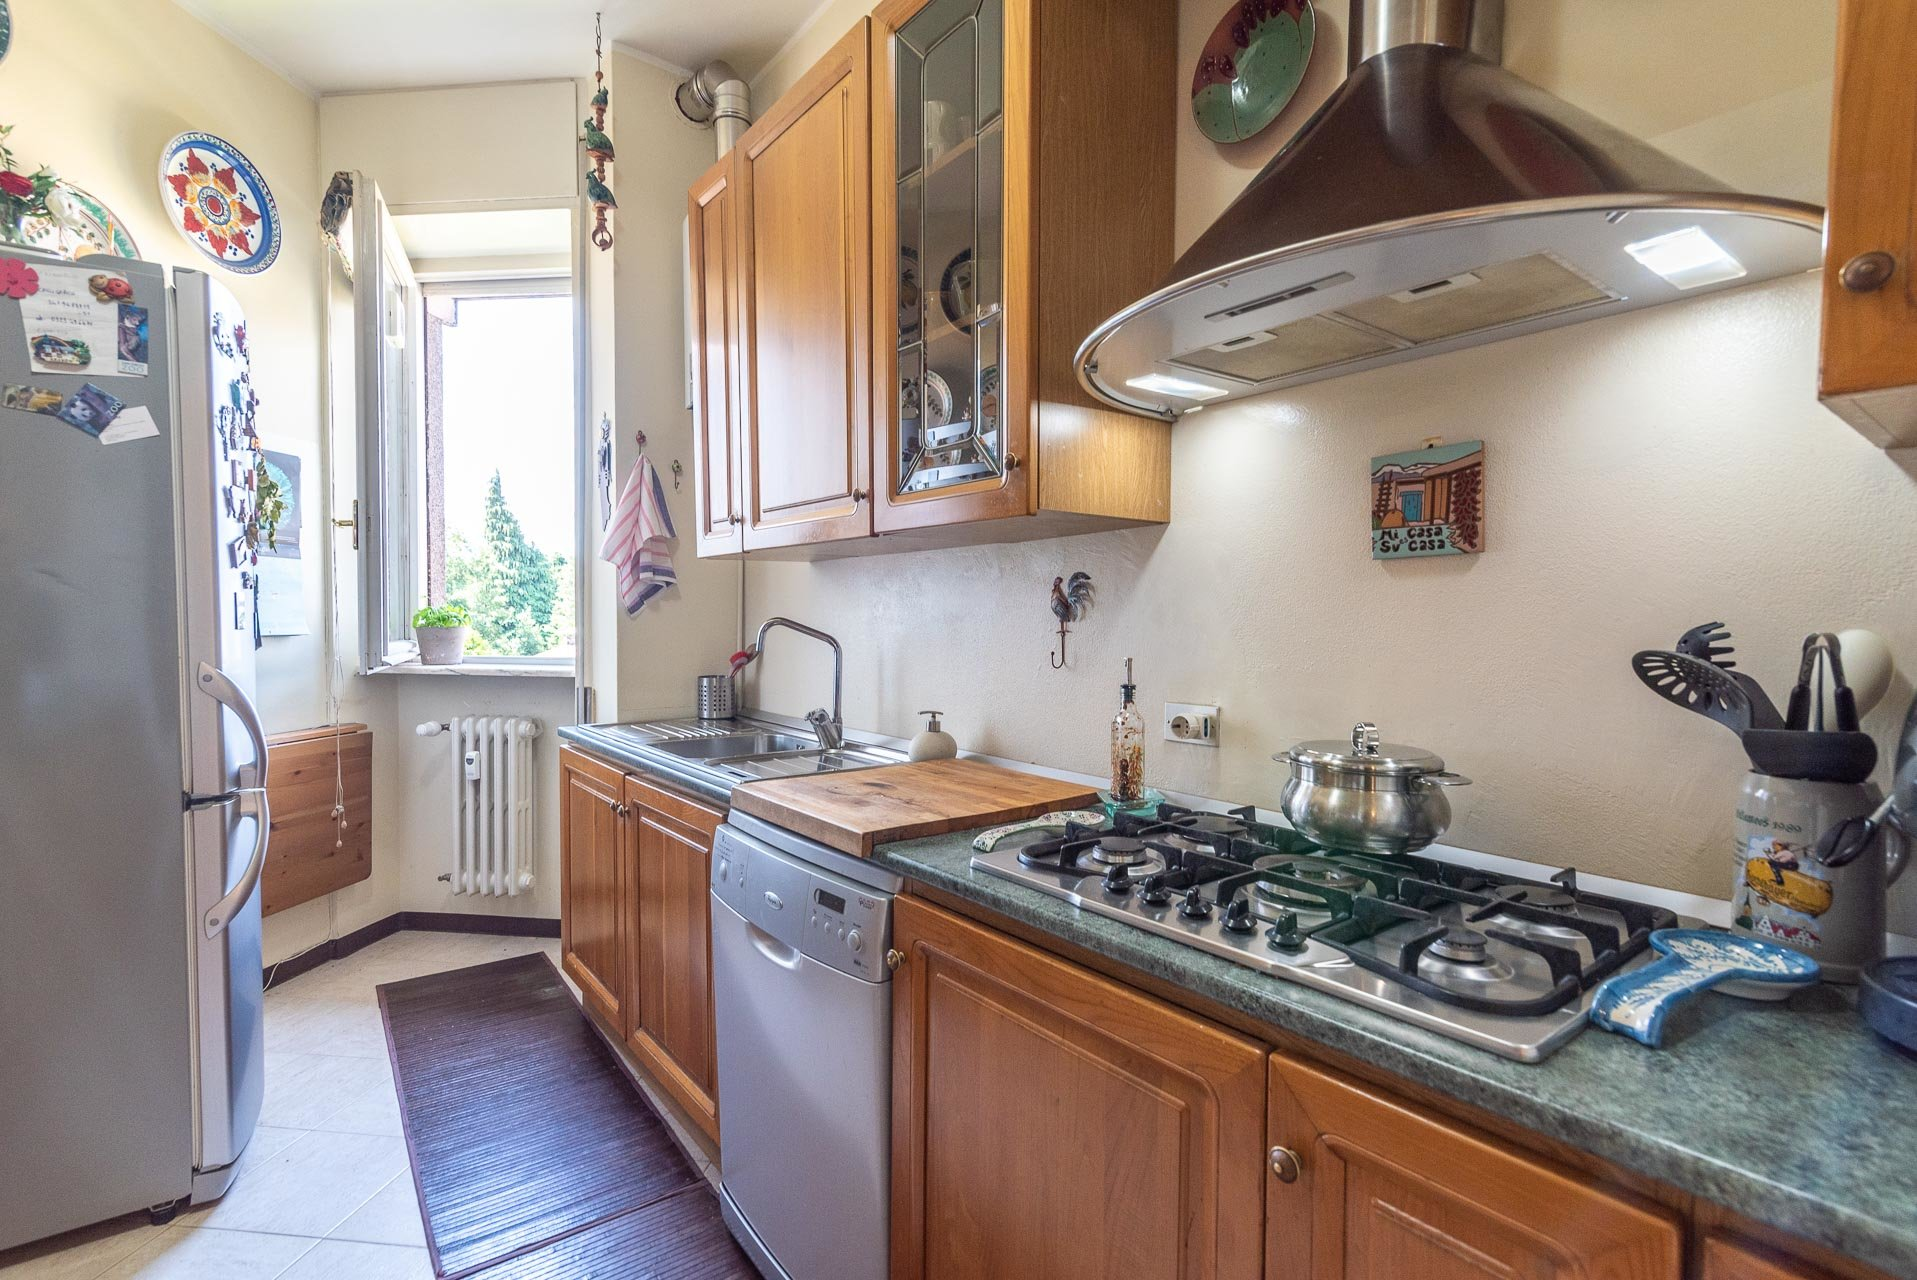 Apartment for sale in Stresa centre - hob